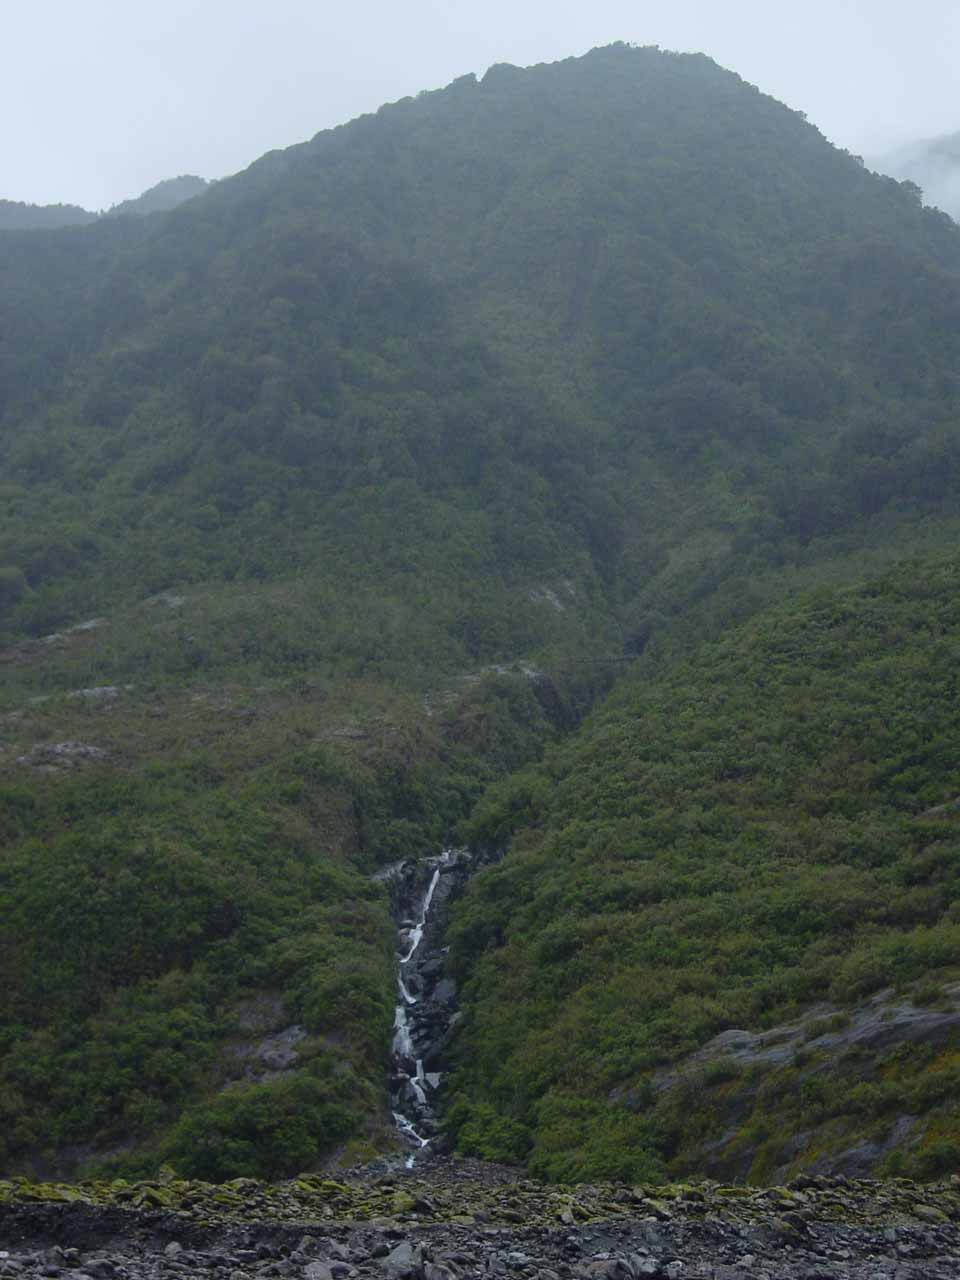 Looking across the valley towards this waterfall towered over by a bush-clad mountain